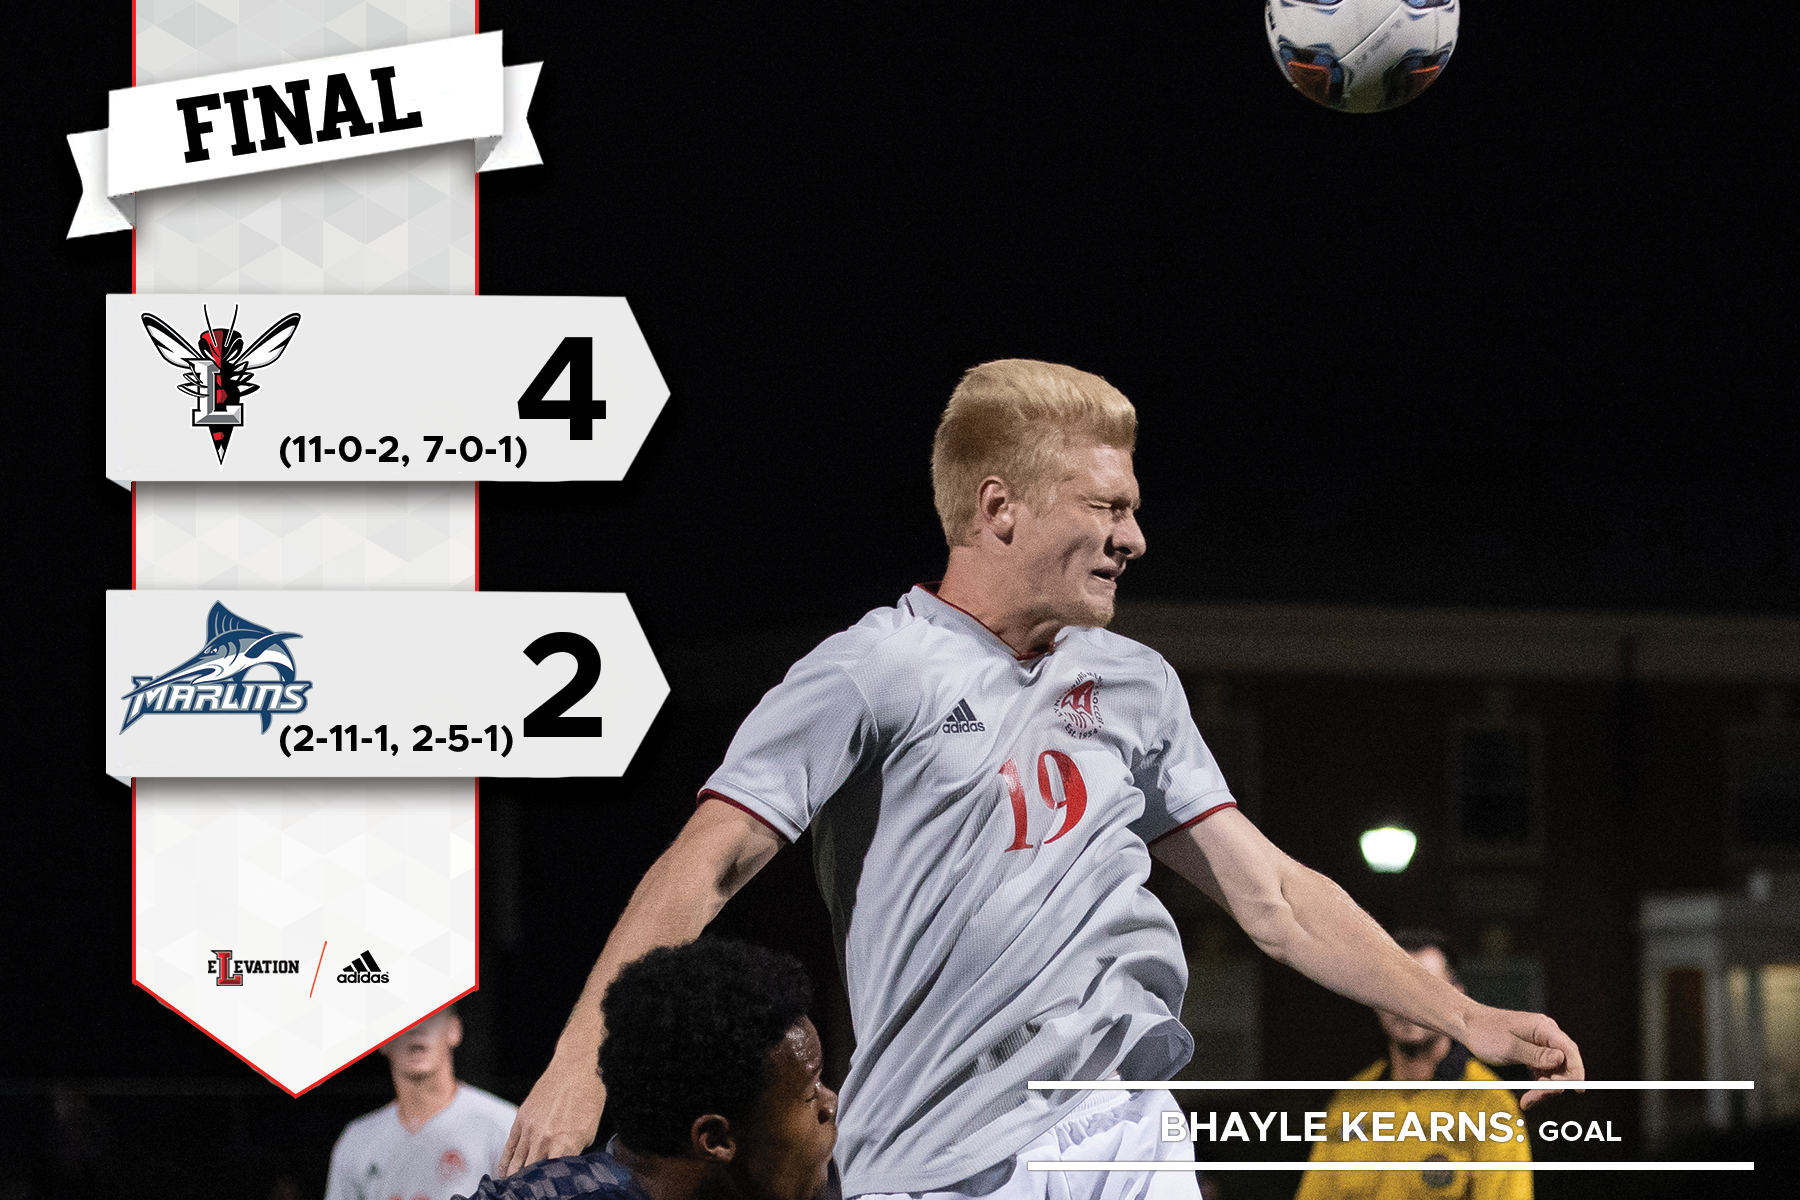 Bhalye Kearns heads a soccer ball. Graphic showing 4-2 final score and team logos.